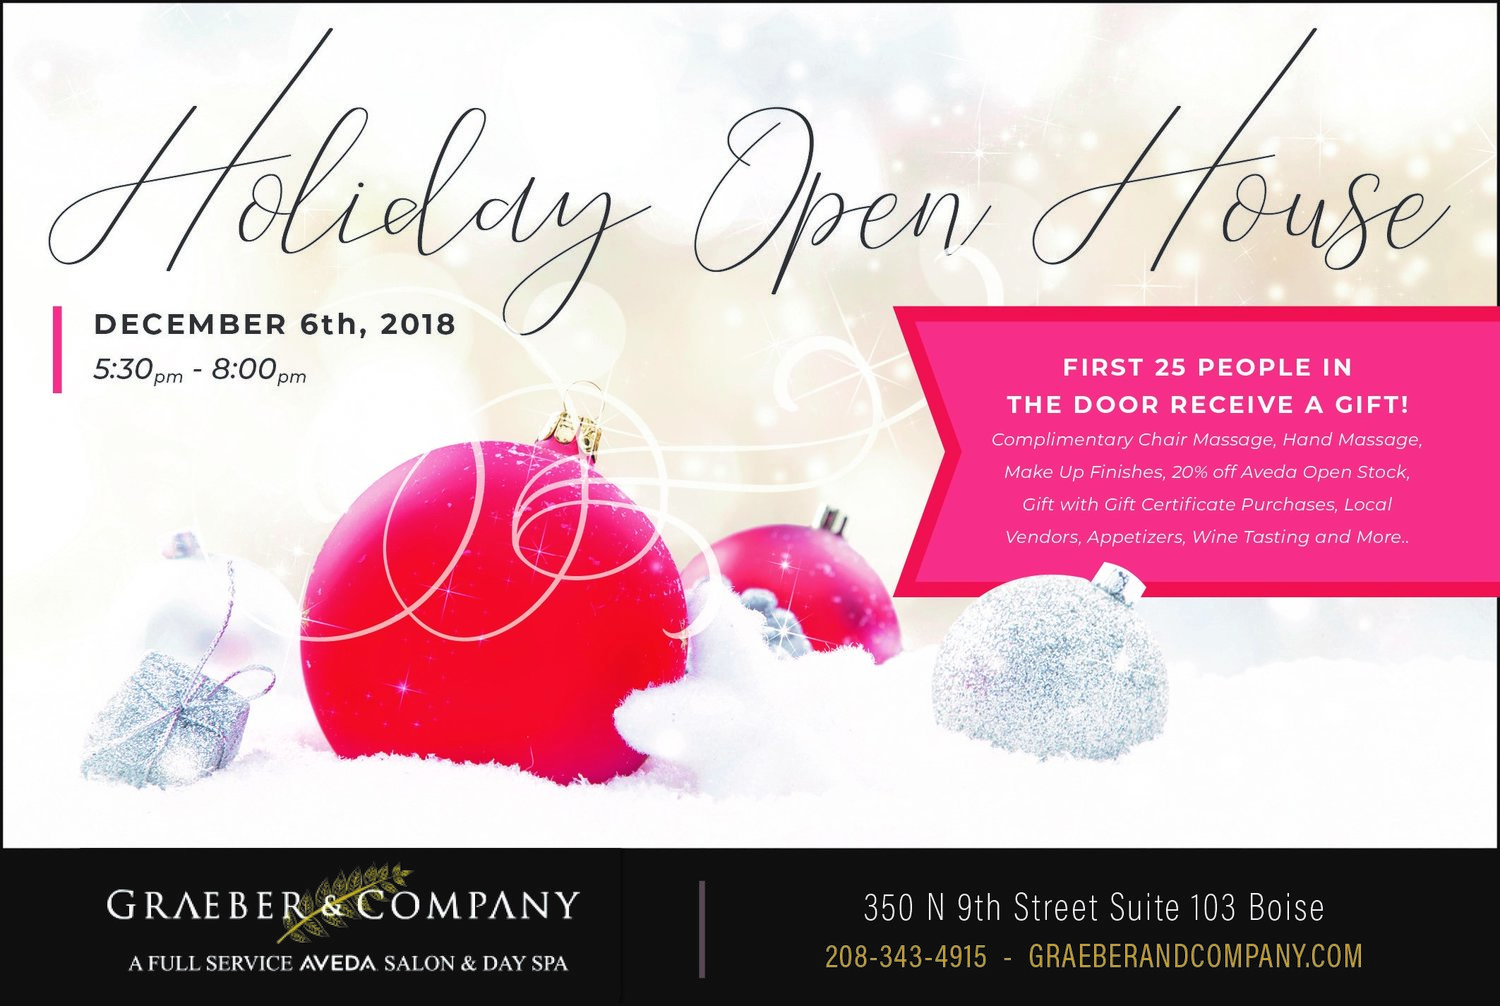 Graeber's Holiday Open House